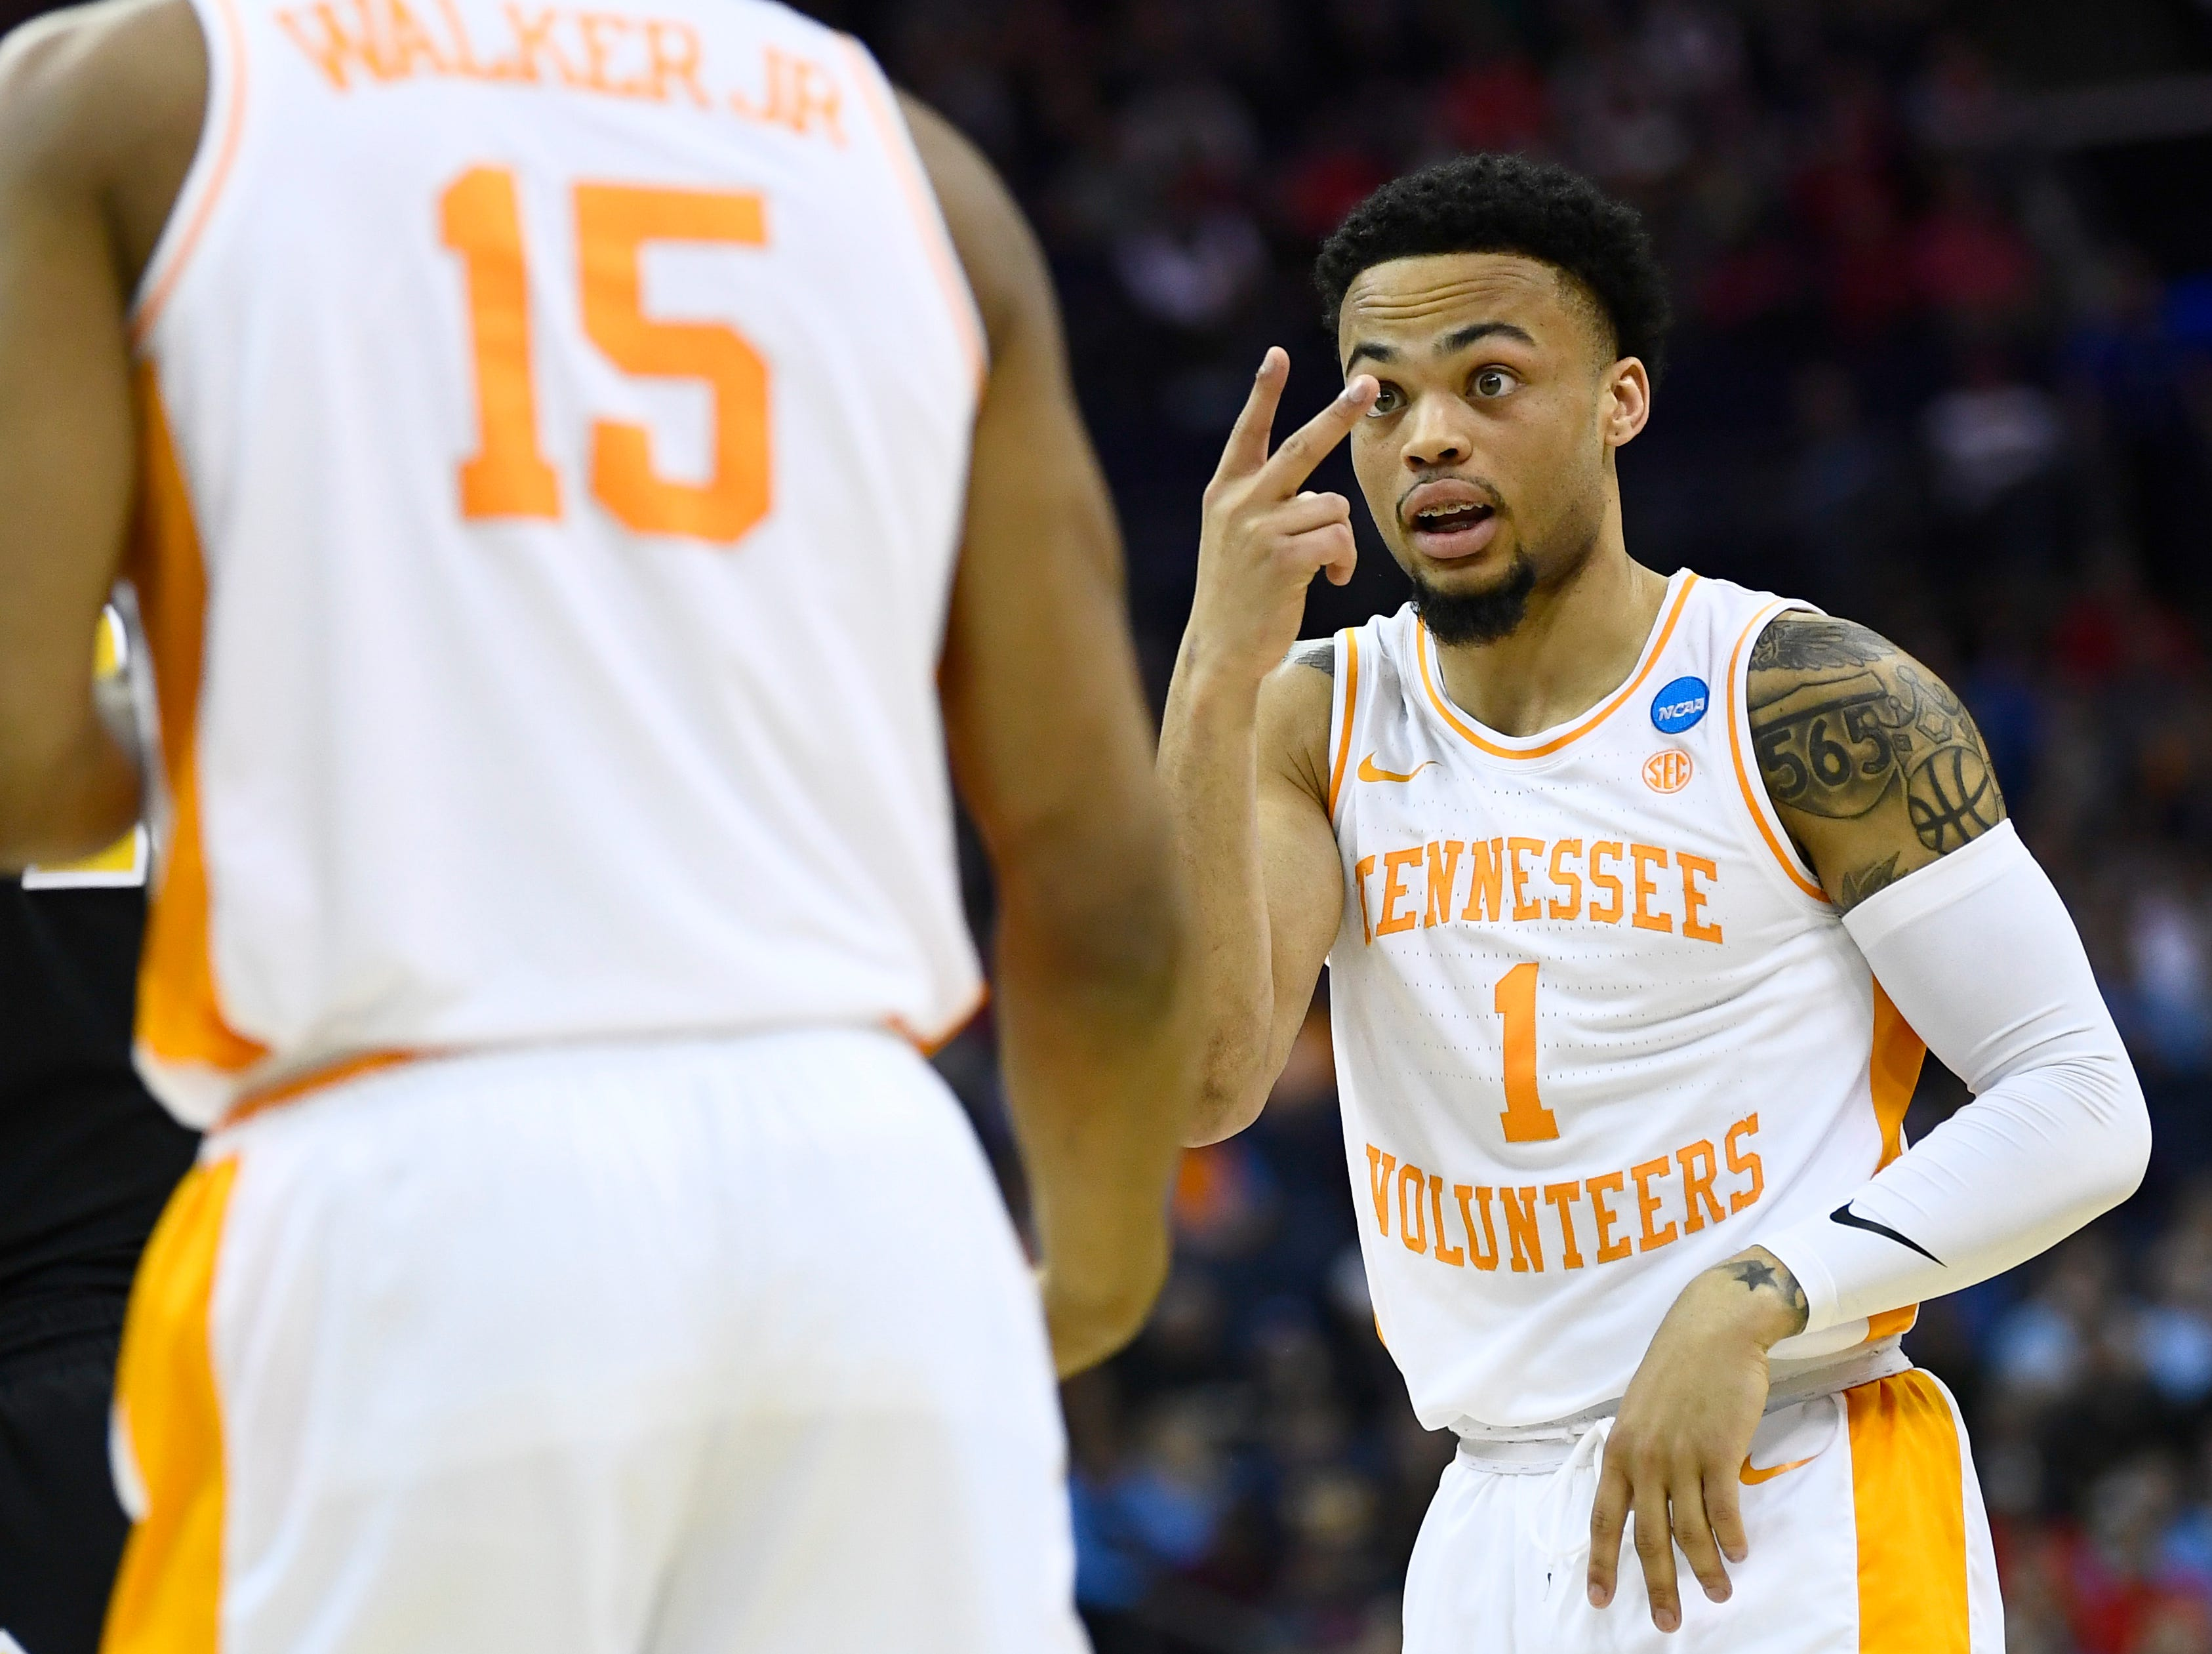 Tennessee guard Lamonte Turner (1) talks to forward Derrick Walker (15) during the first half of the game against the Iowa Hawkeyes in the second round of the NCAA Tournament at Nationwide Arena in Columbus, Ohio, Sunday, March 24, 2019.